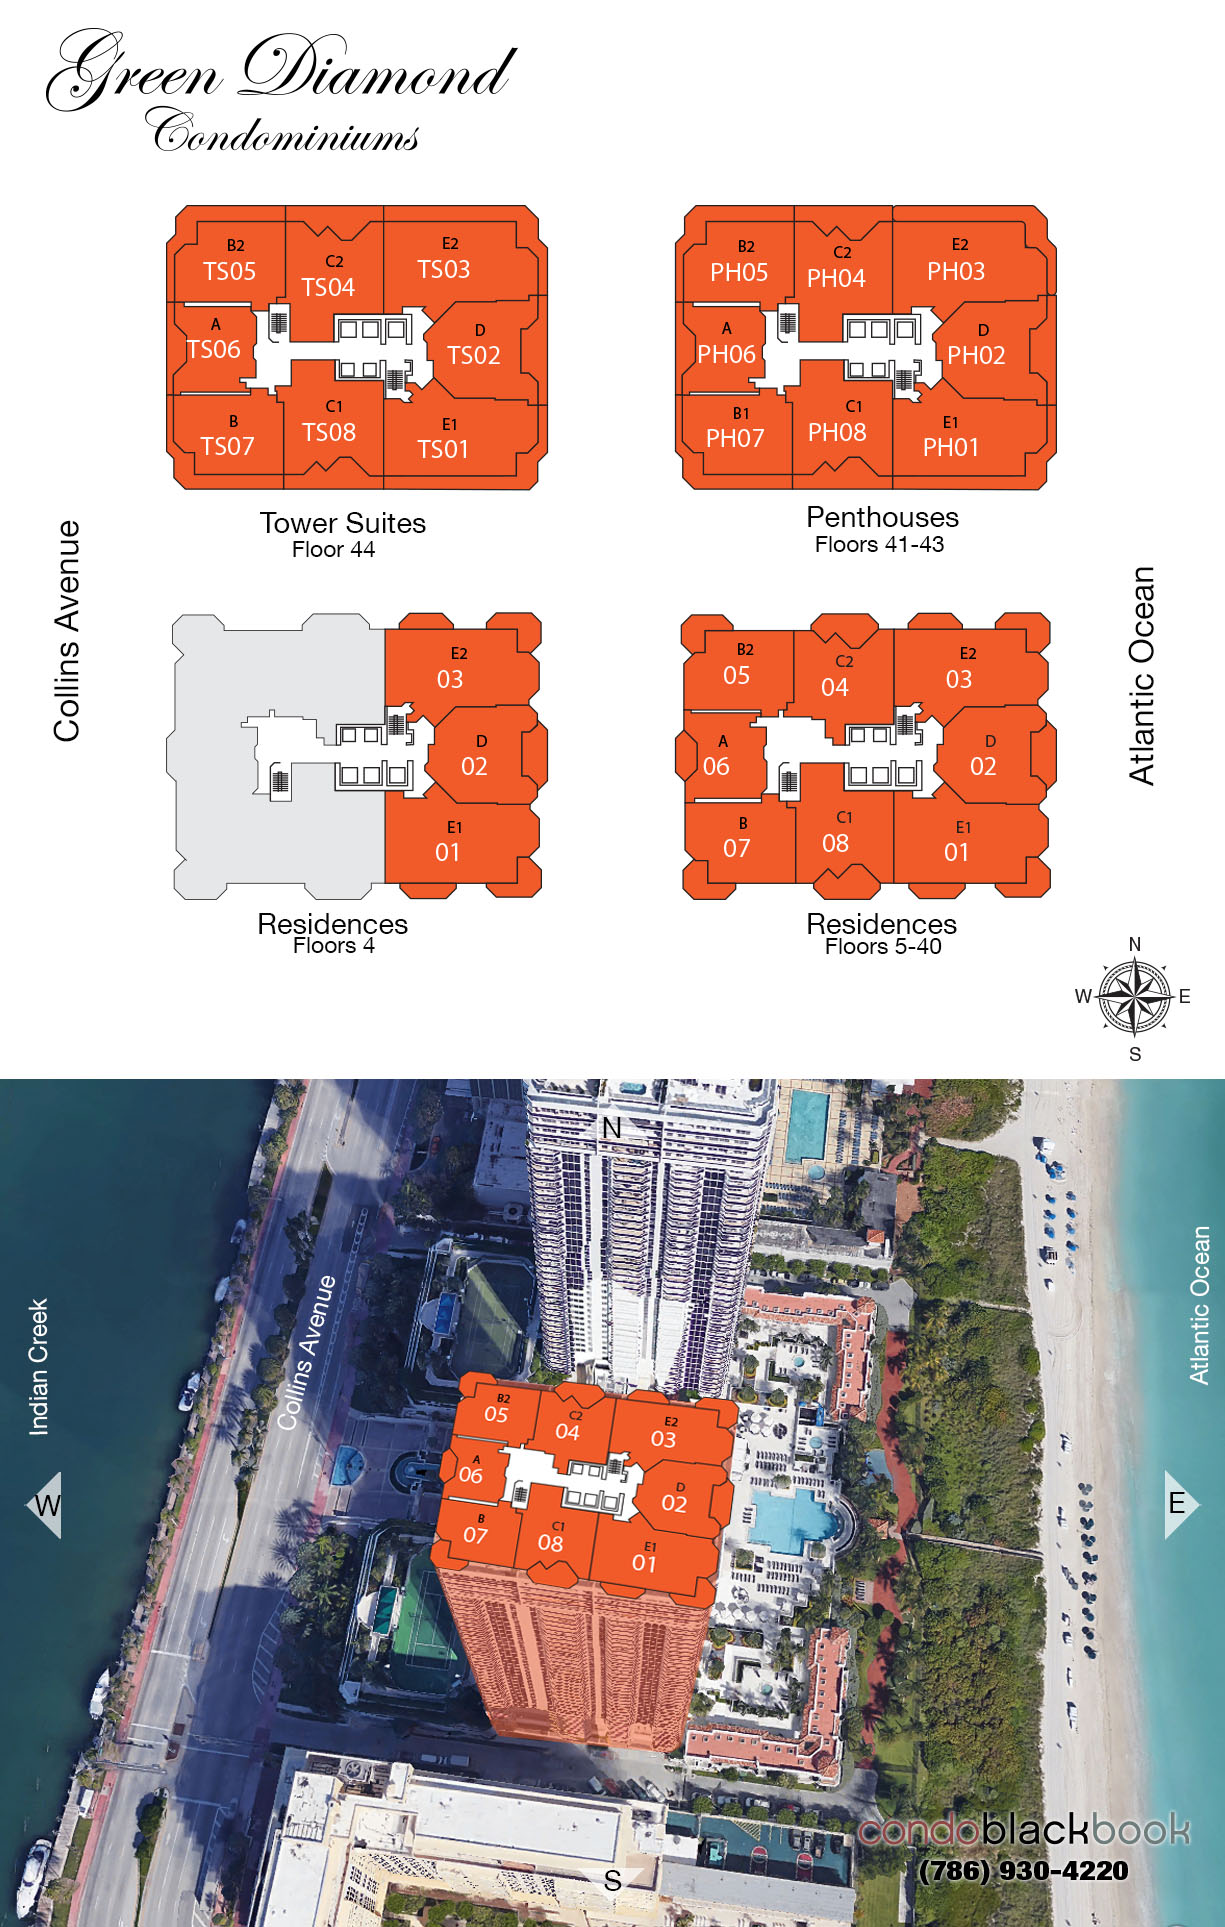 Green Diamond floorplan and site plan